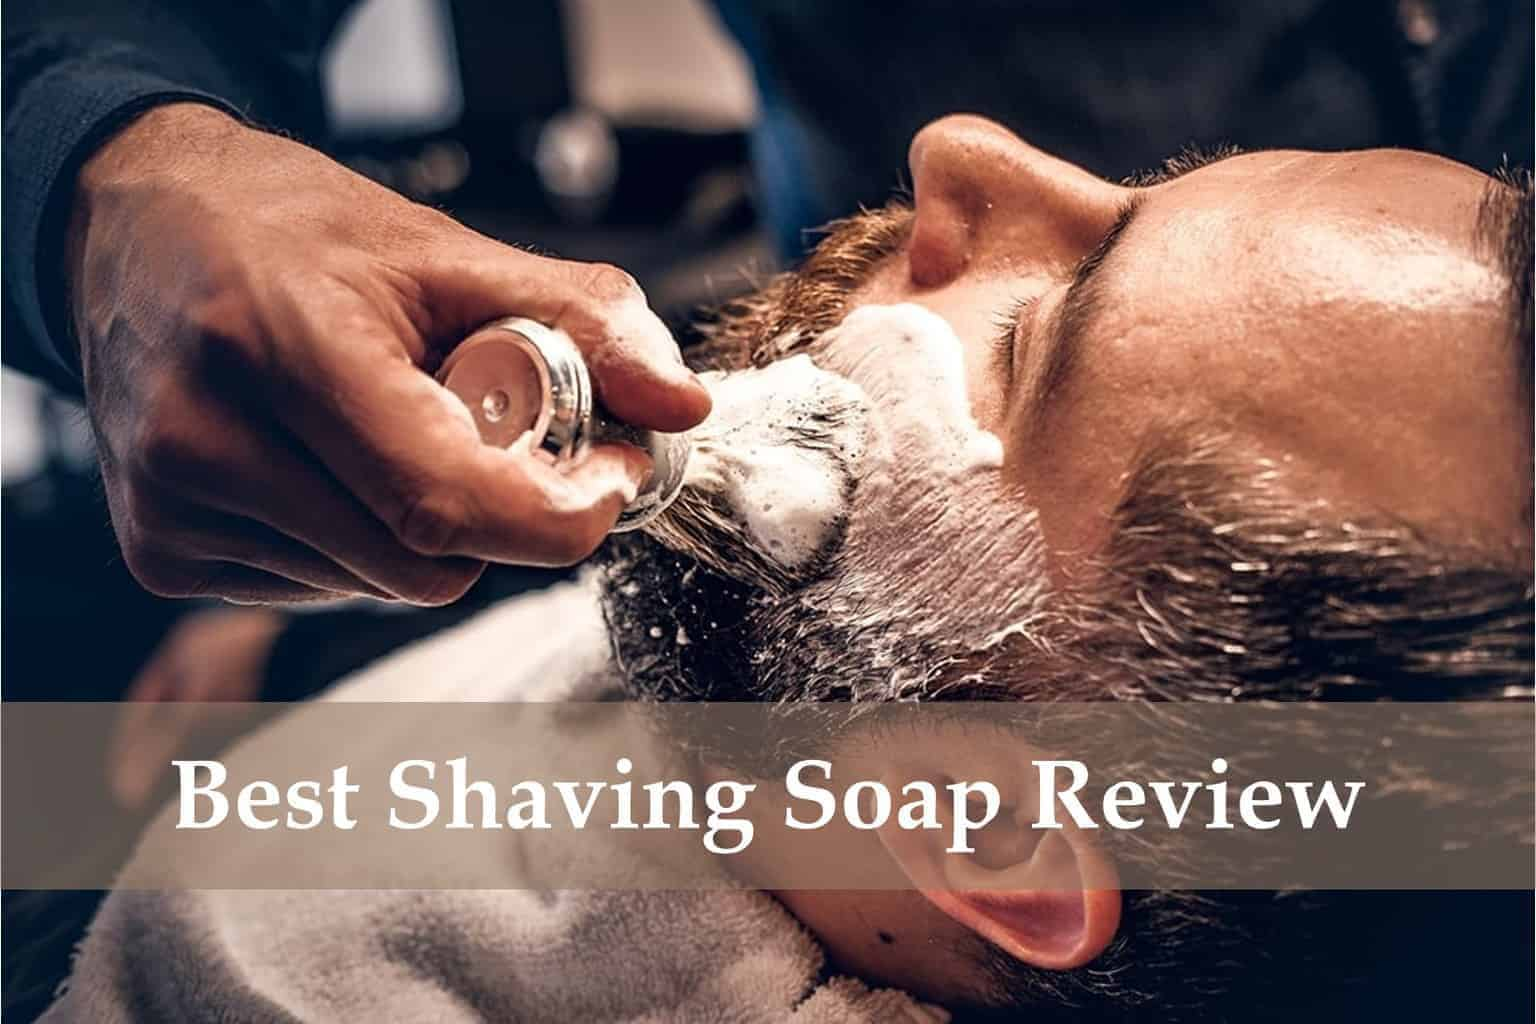 8 Best Shaving Soaps Get Reviewed Insider S Opinion